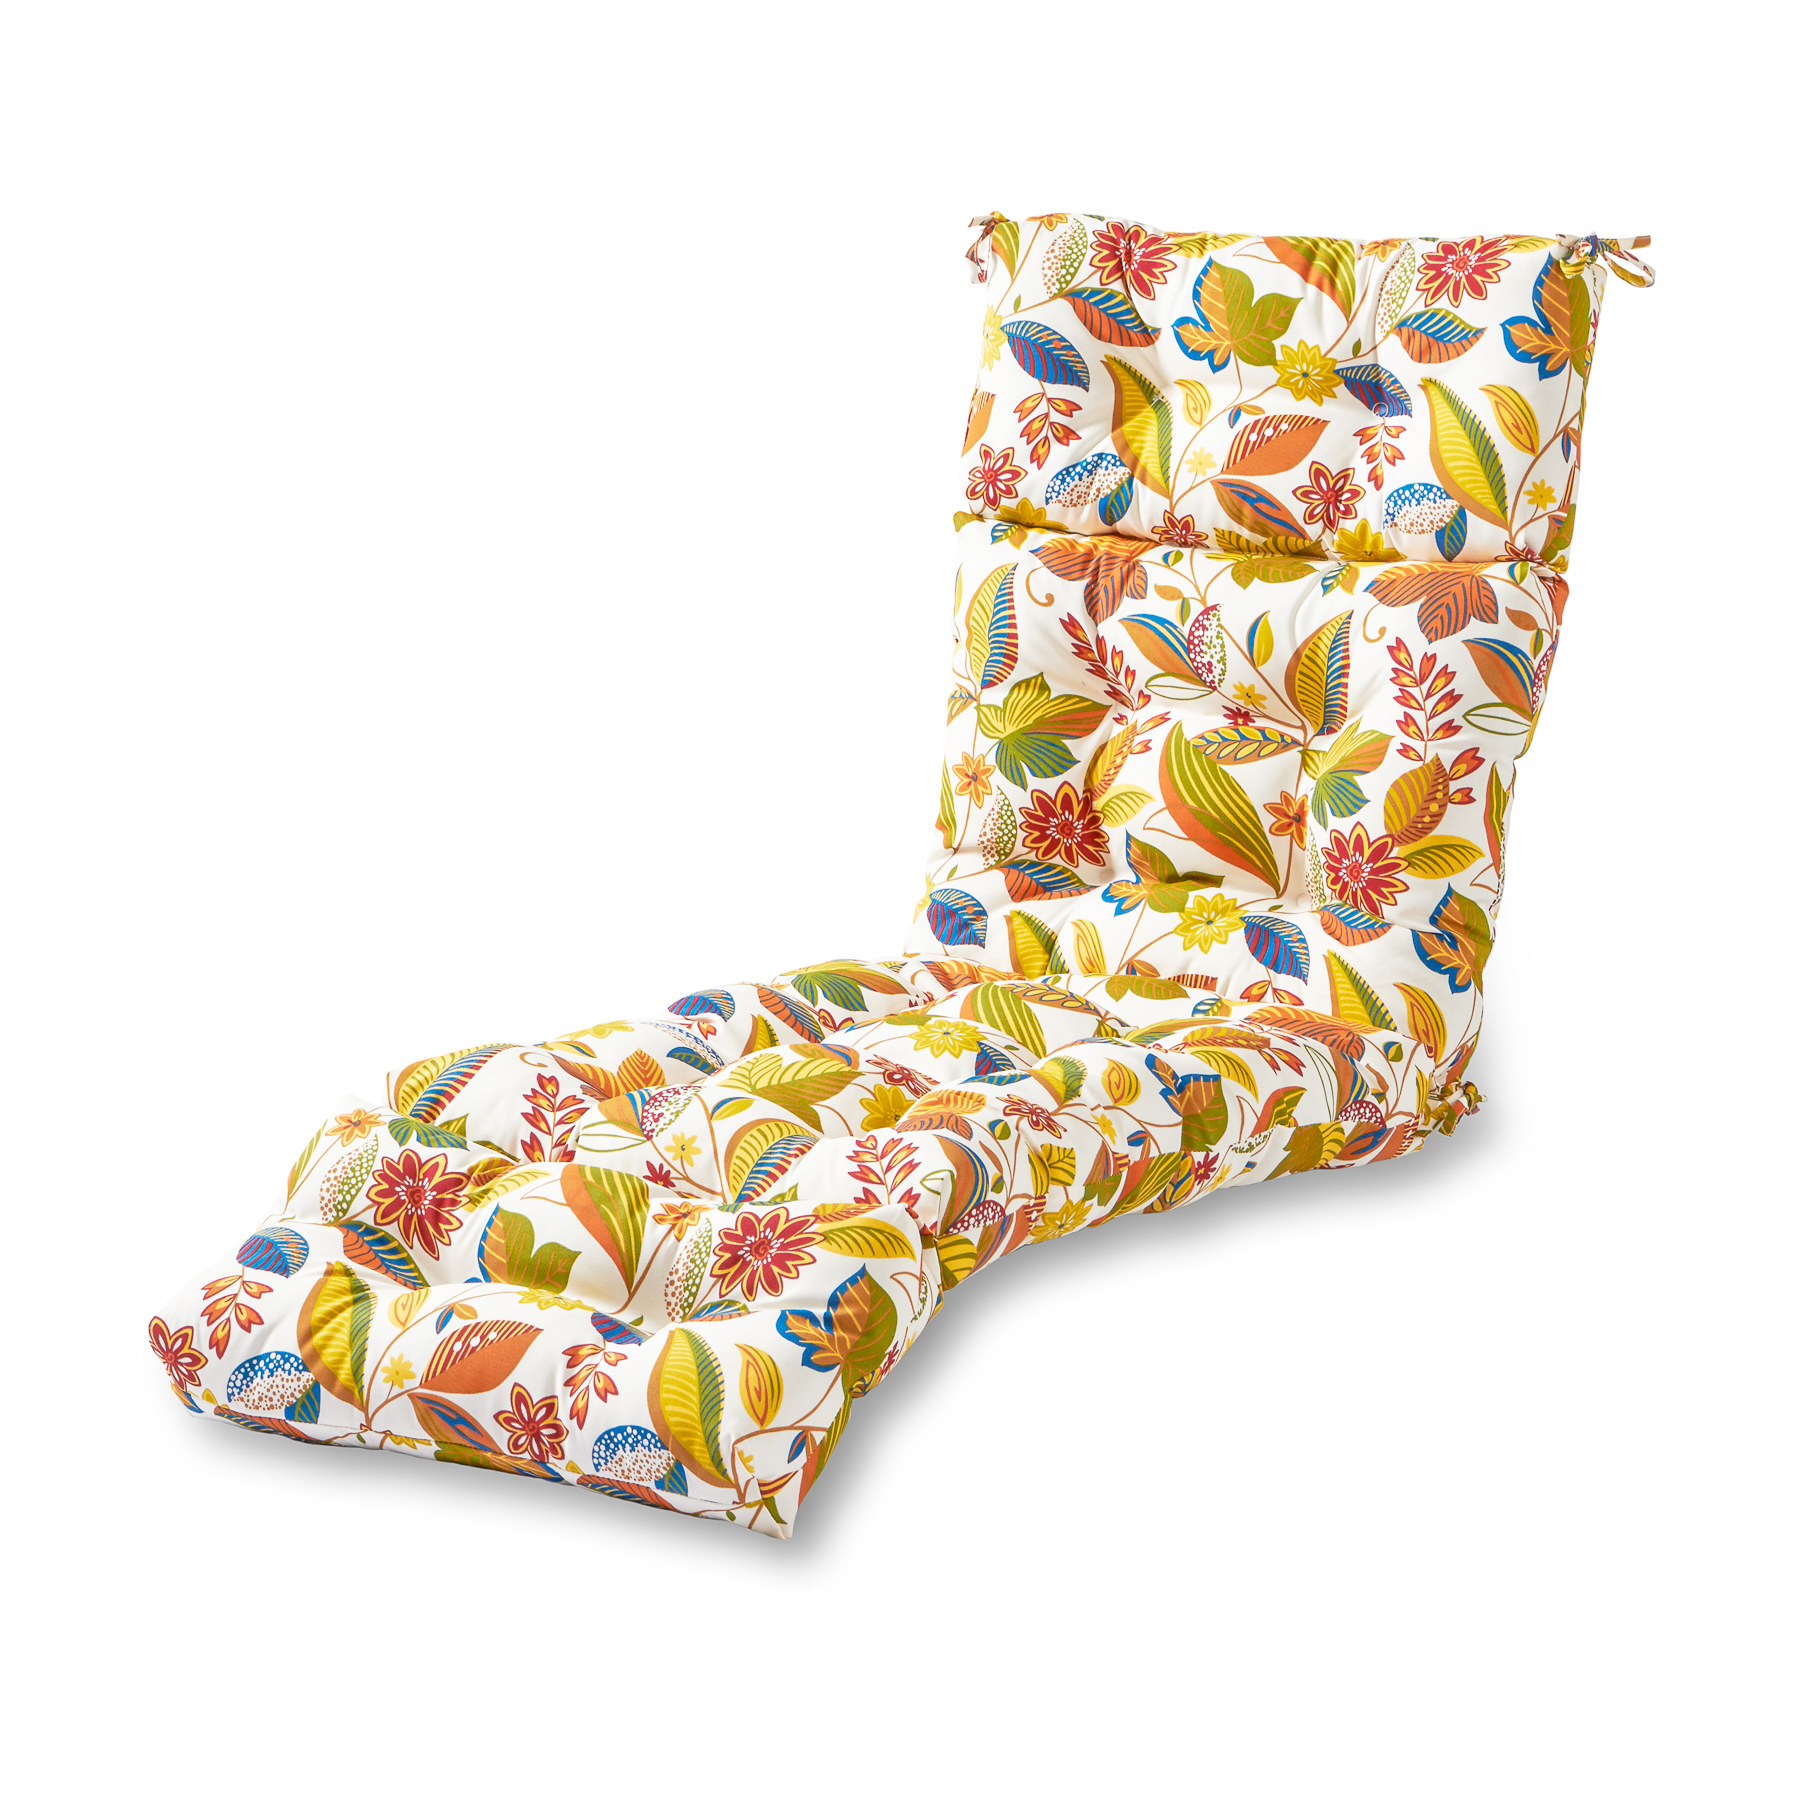 Greendale Home Fashions Esprit Outdoor Chaise Lounge Cushion